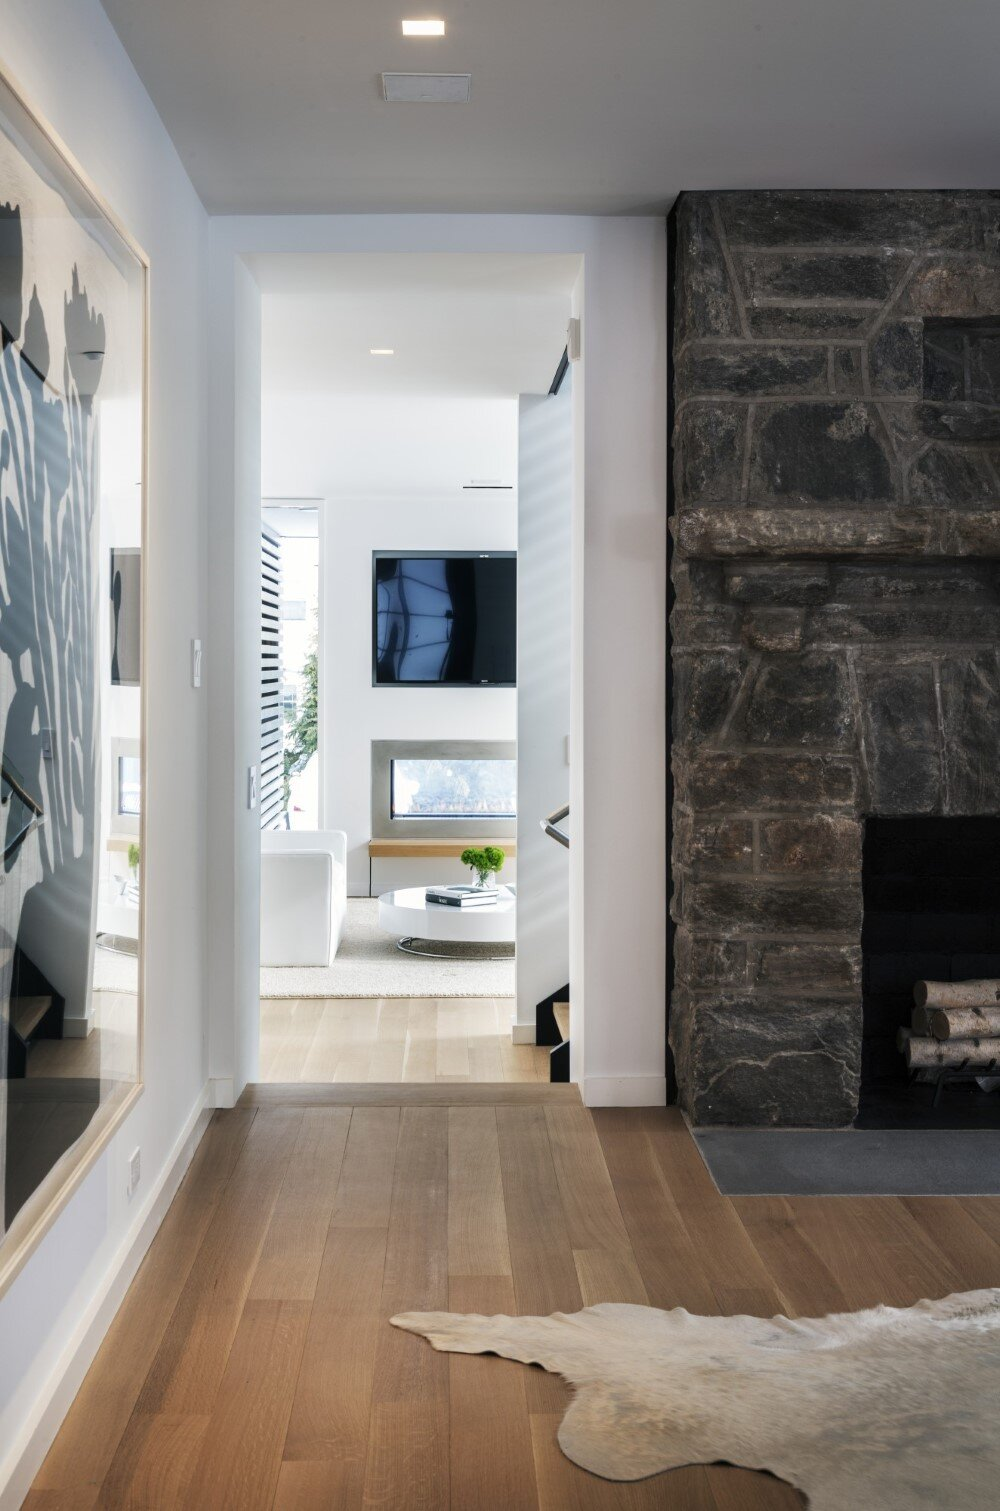 Tudor house restoration and extension project developed by Moore & Partners Architects JOEB - HomeWorldDesign (10) (Custom)